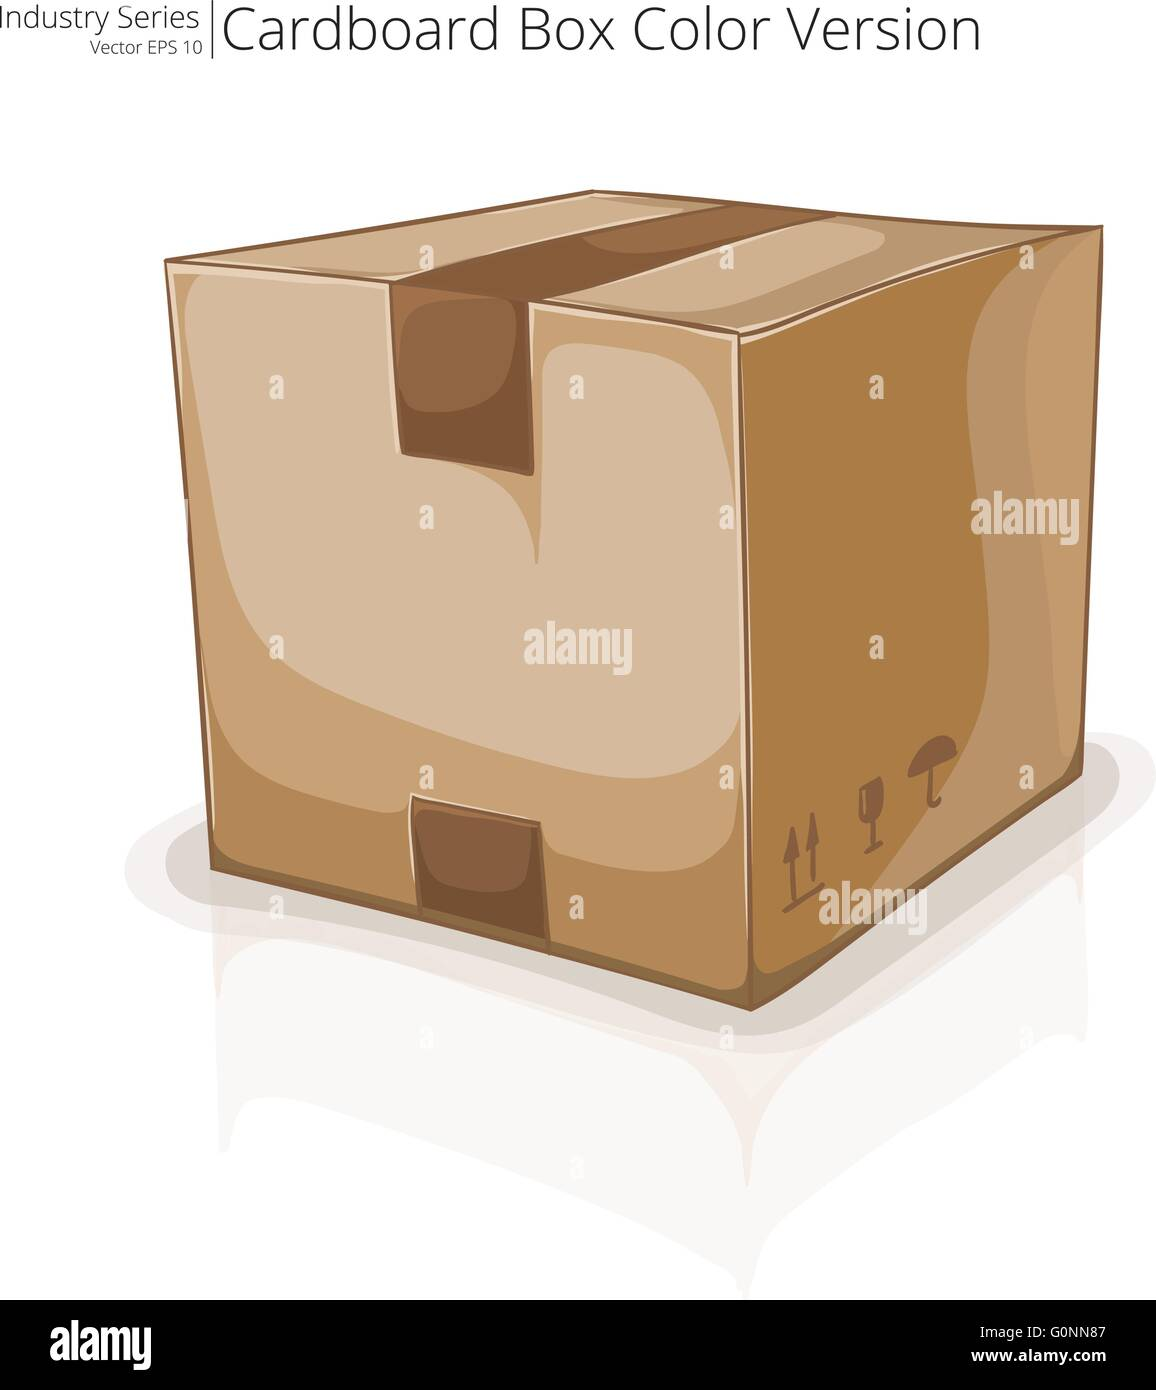 Abstract closed Cardboard Box. Front perspective view. Vector EPS10. - Stock Vector